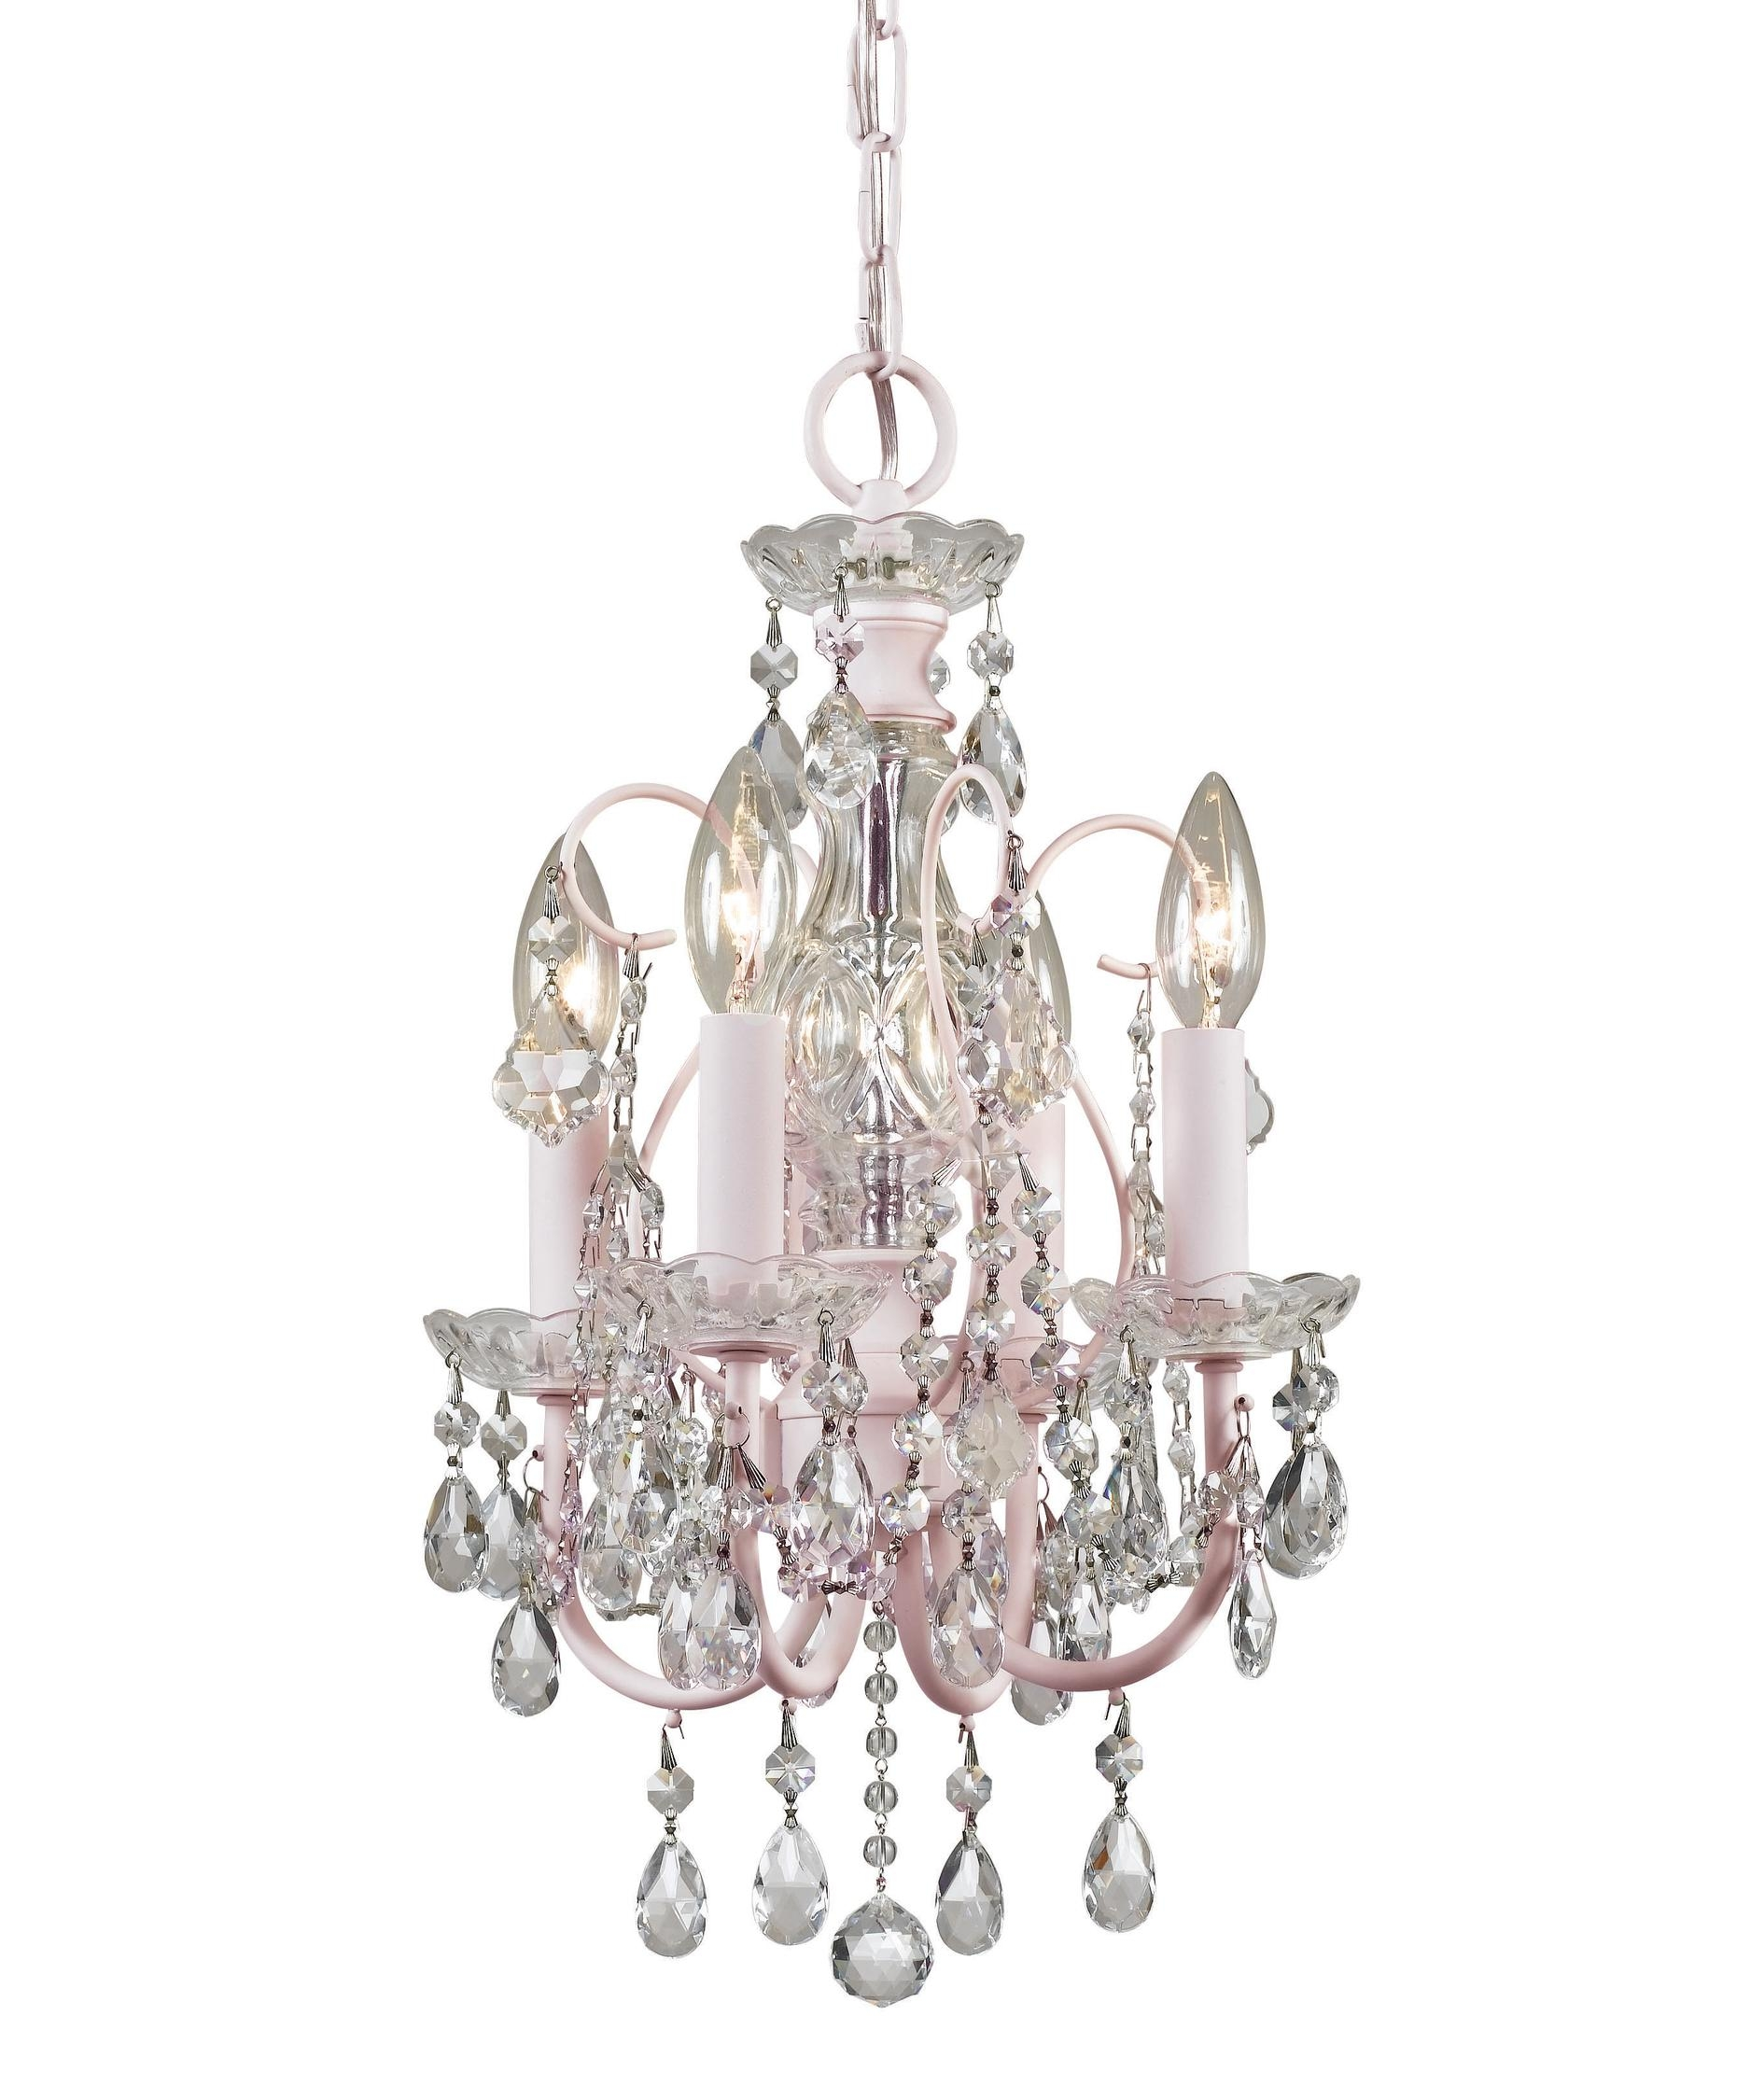 Crystorama 3224 Imperial 14 Inch Wide 4 Light Mini Chandelier Pertaining To Mini Crystal Chandeliers (View 20 of 25)